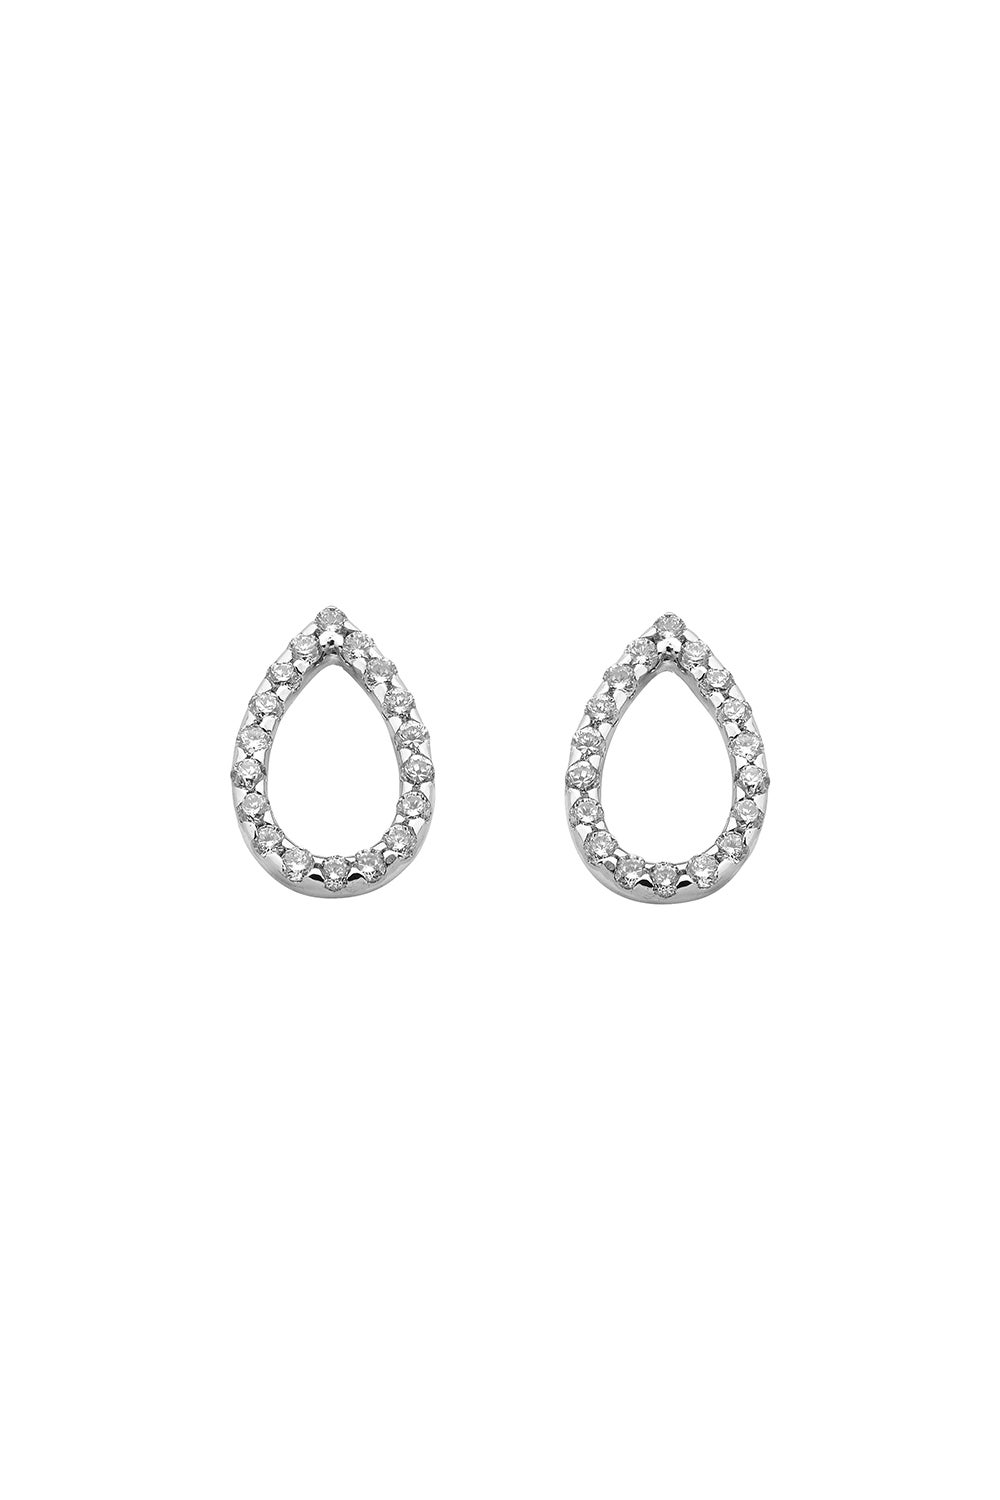 Capsule Diamond Earrings, 9ct White Gold, .24ct Diamond